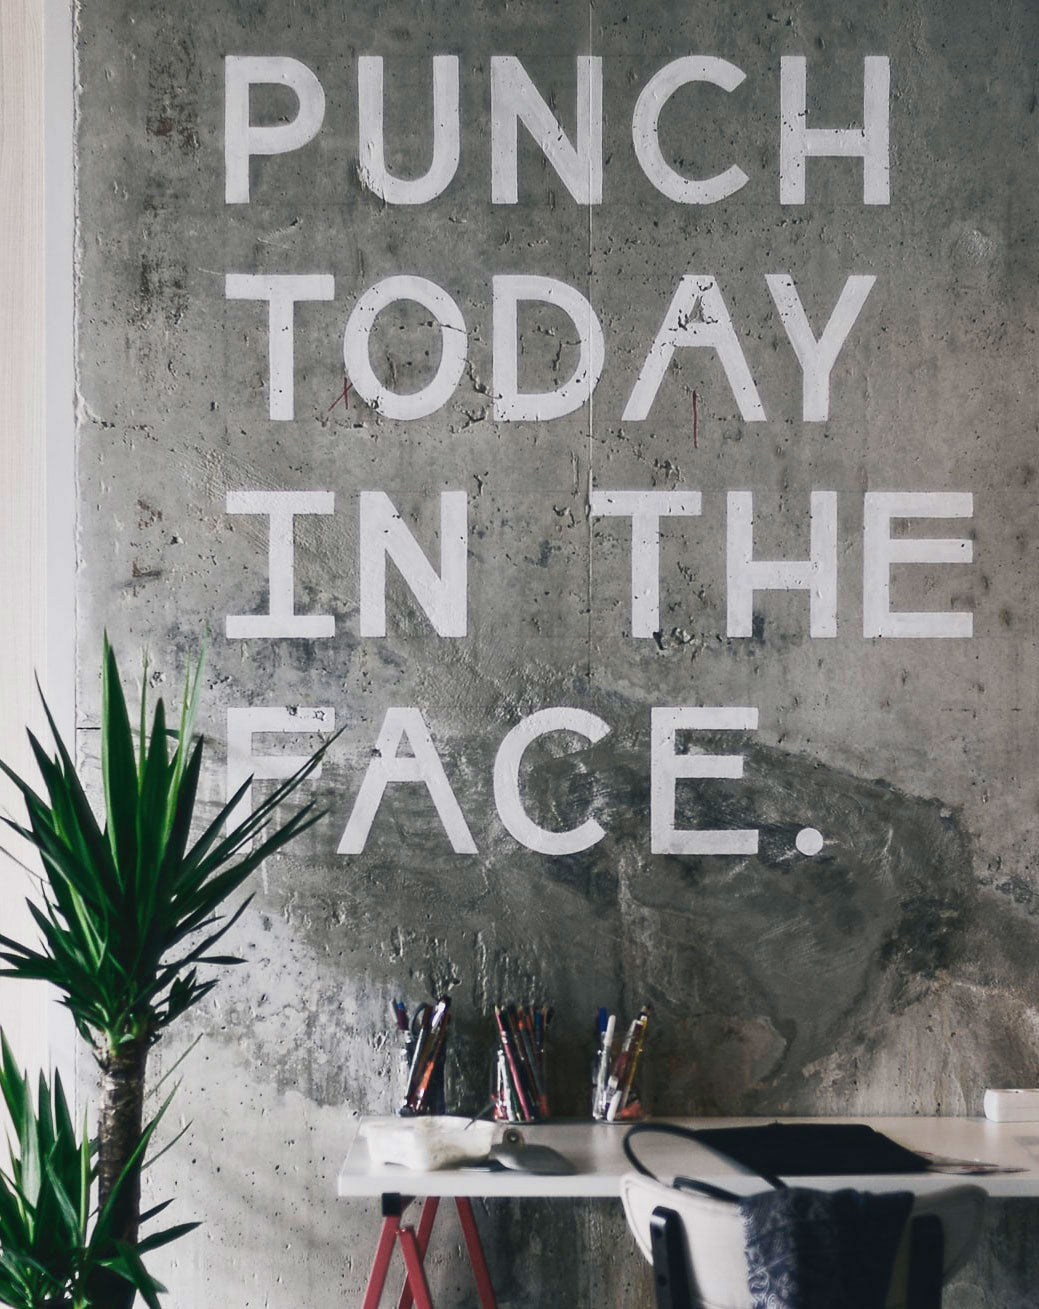 Quote on the wall